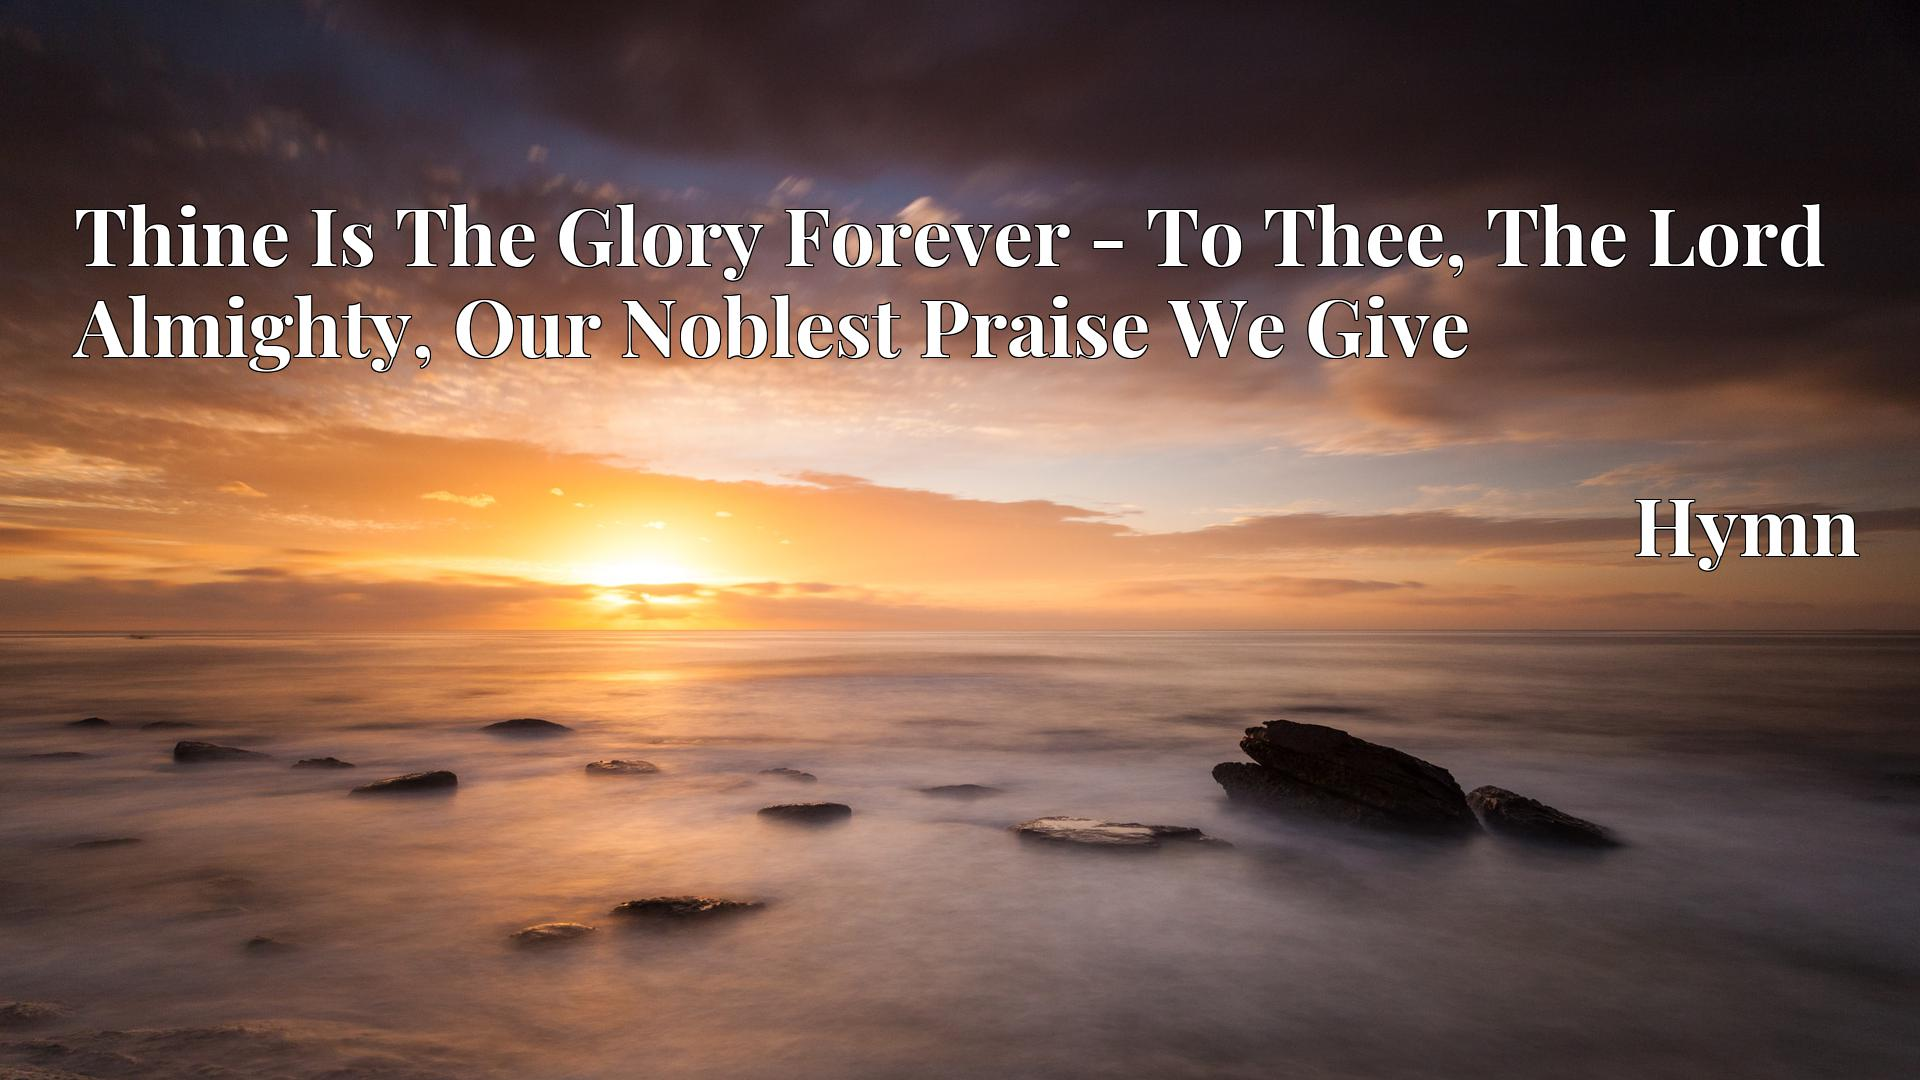 Thine Is The Glory Forever - To Thee, The Lord Almighty, Our Noblest Praise We Give - Hymn